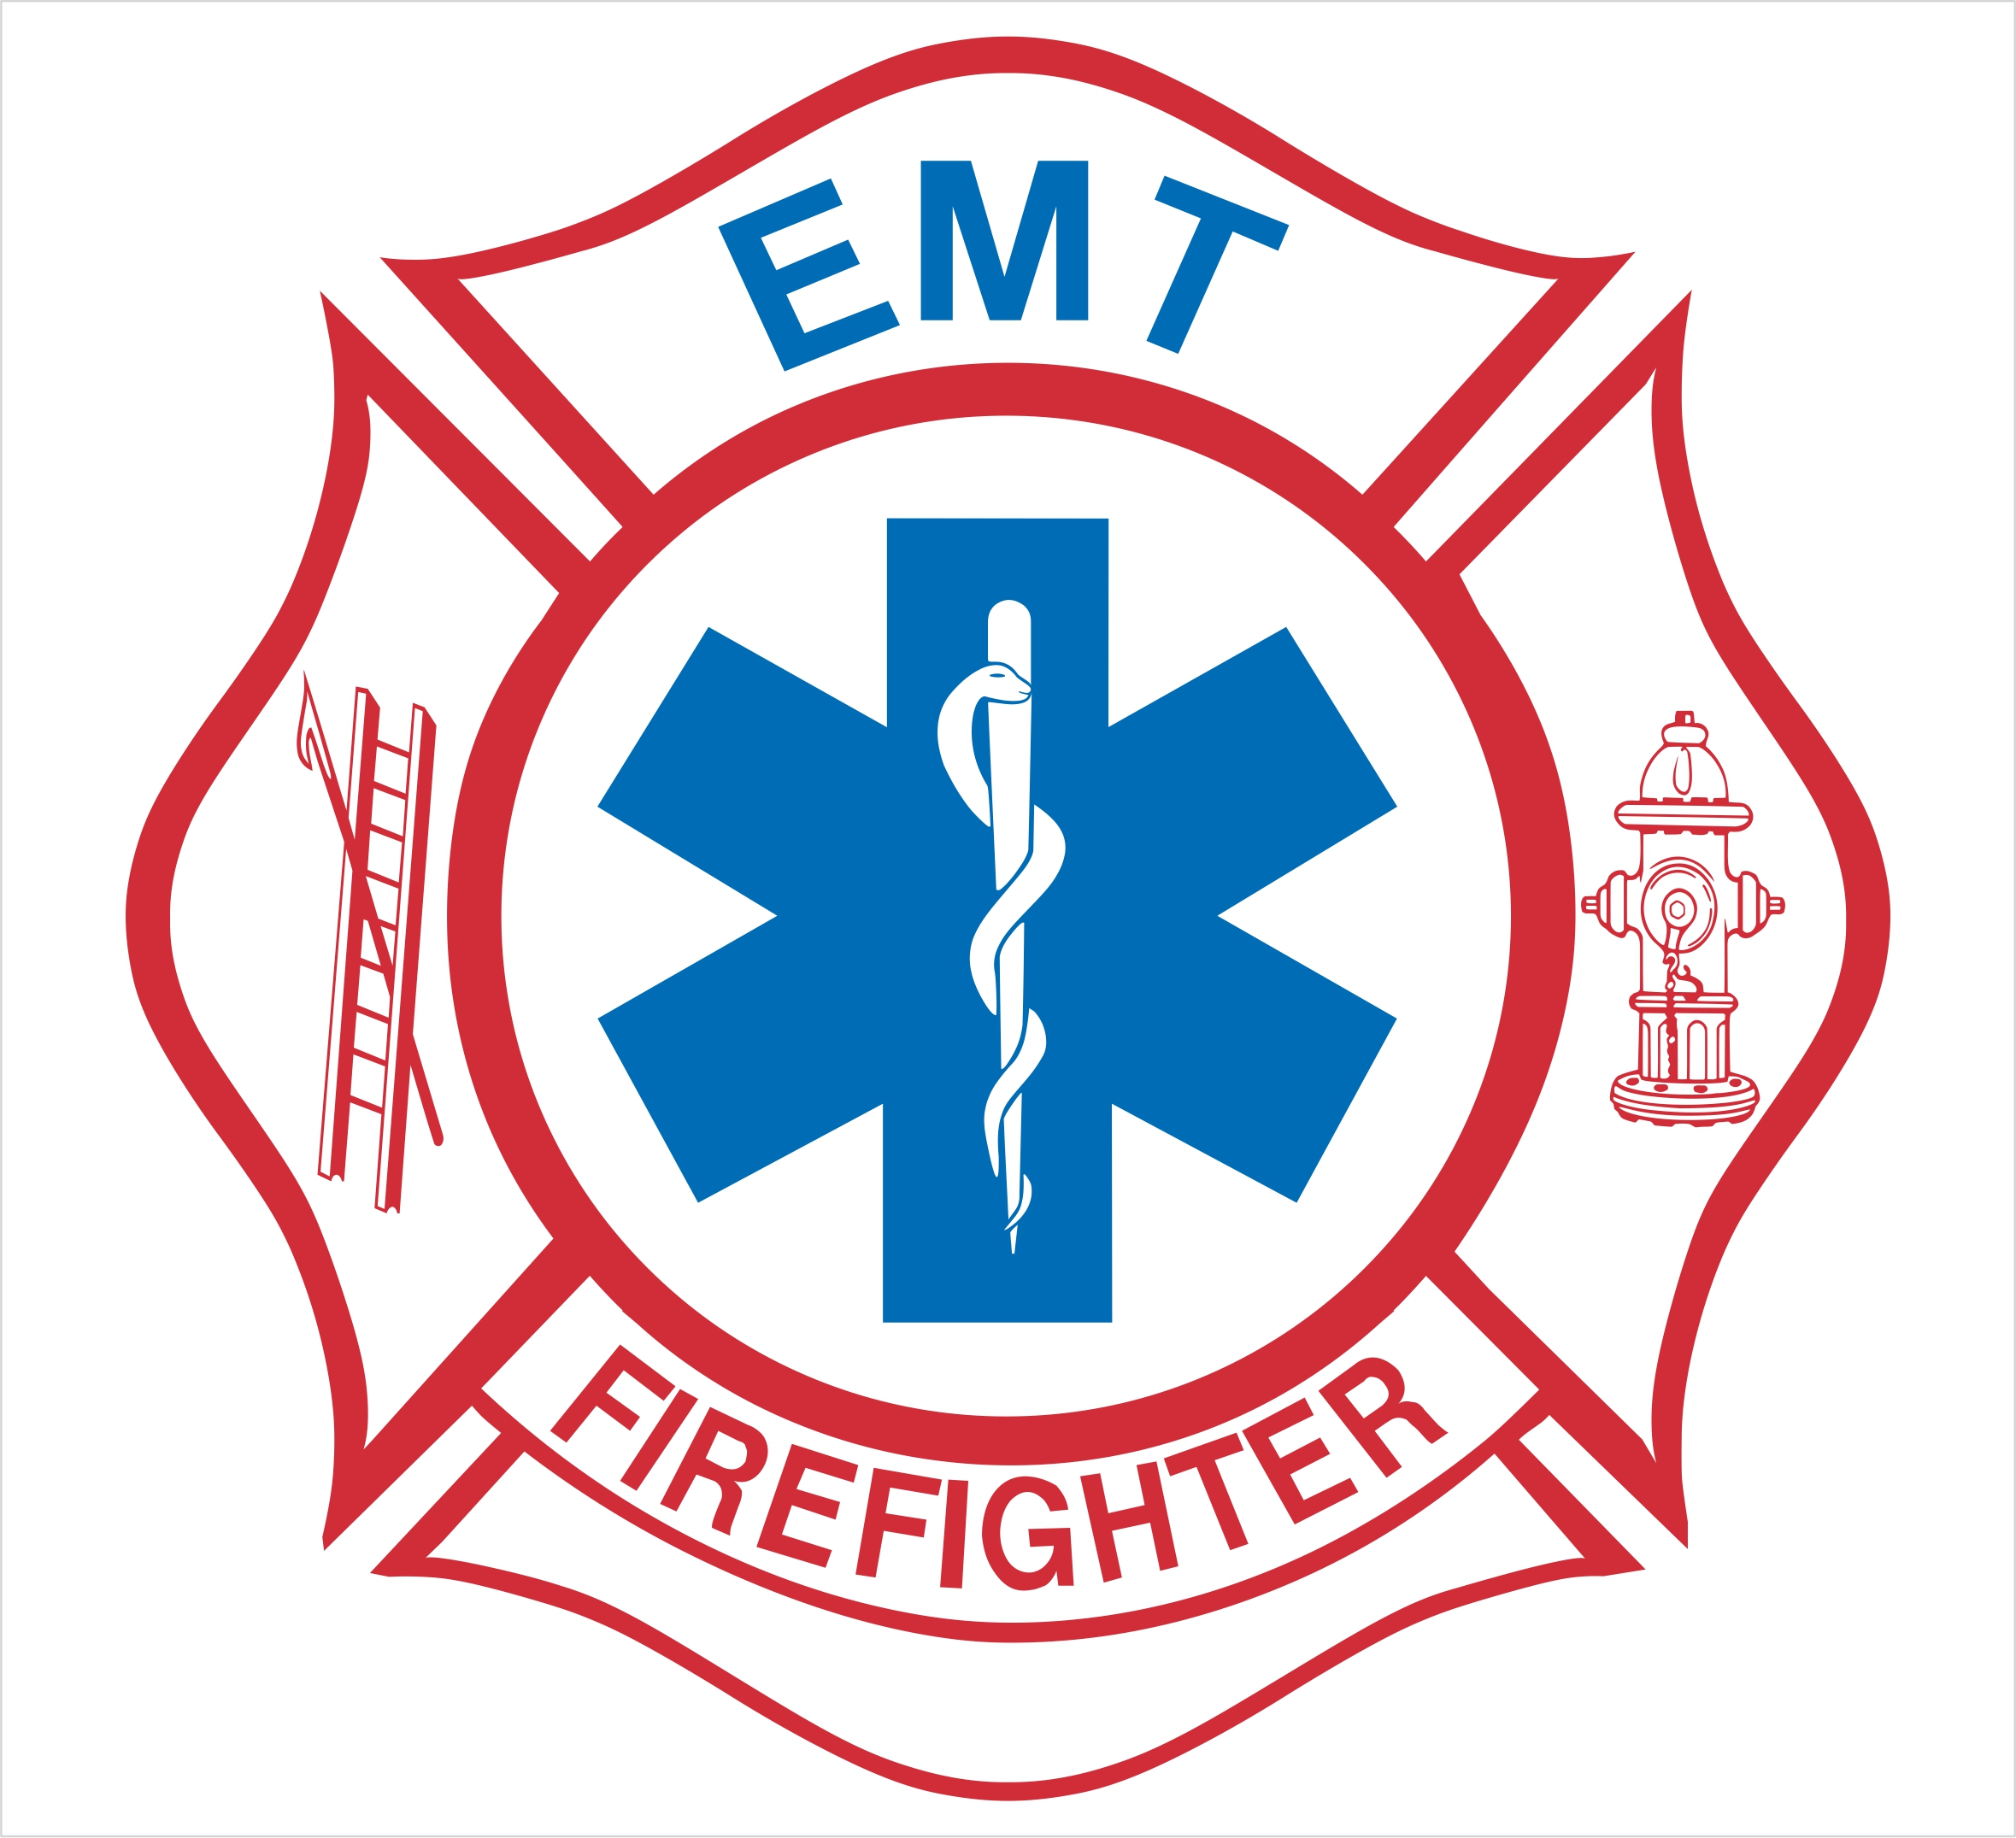 Firefighter Maltese Cross With Flames Emtfirefighter Pictures 2359x2151